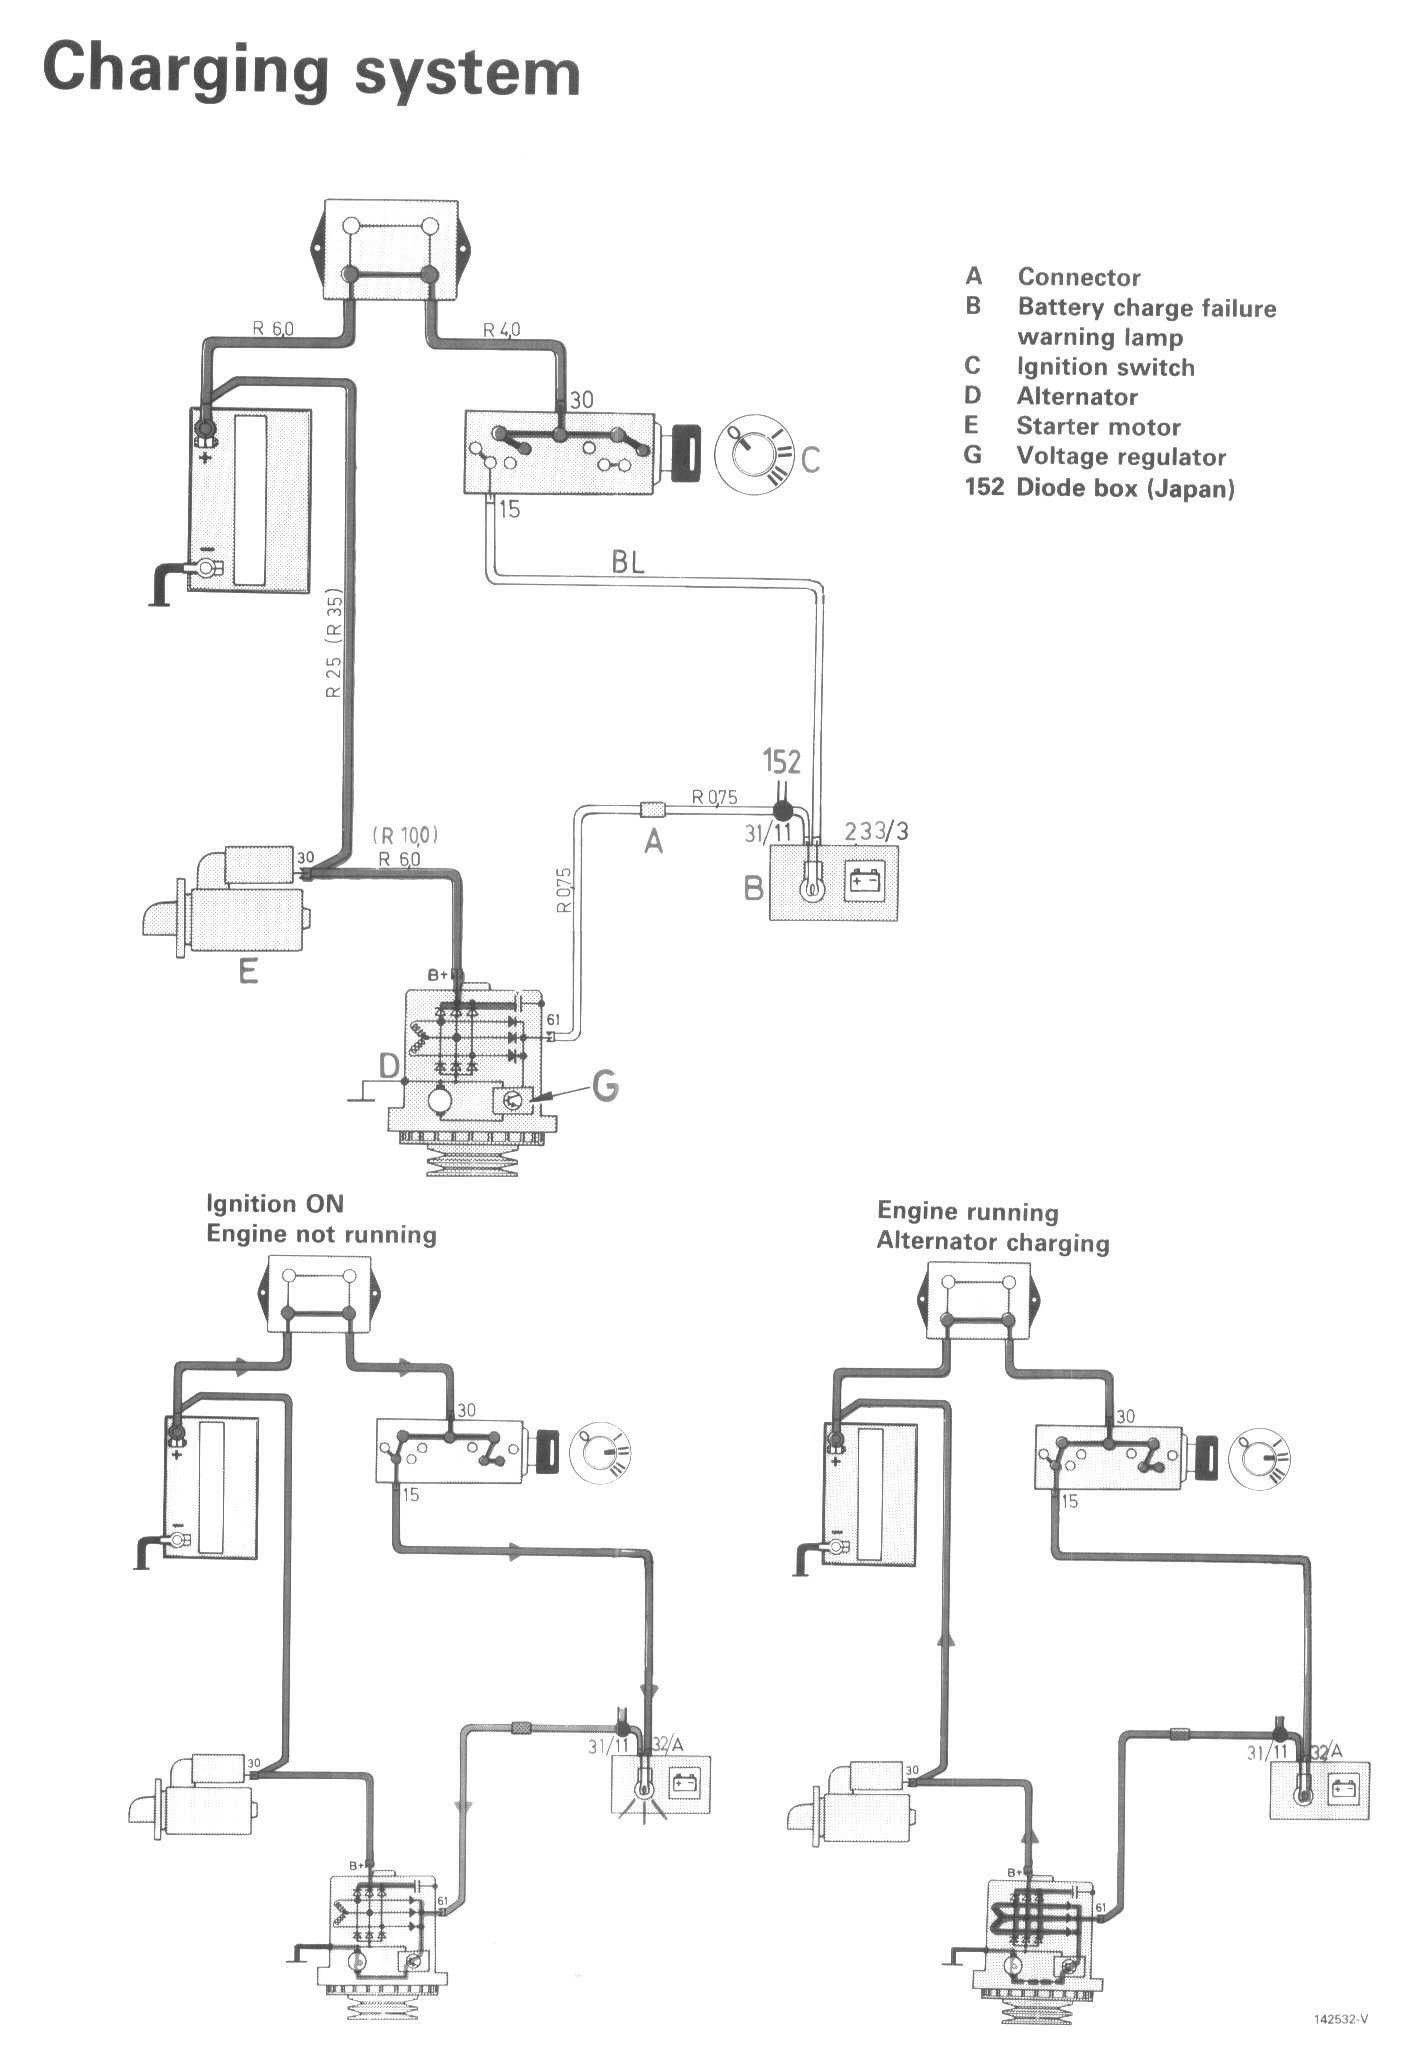 volvo 240 wiring diagrams wiring library  93 volvo 940 wiring diagram free download #11